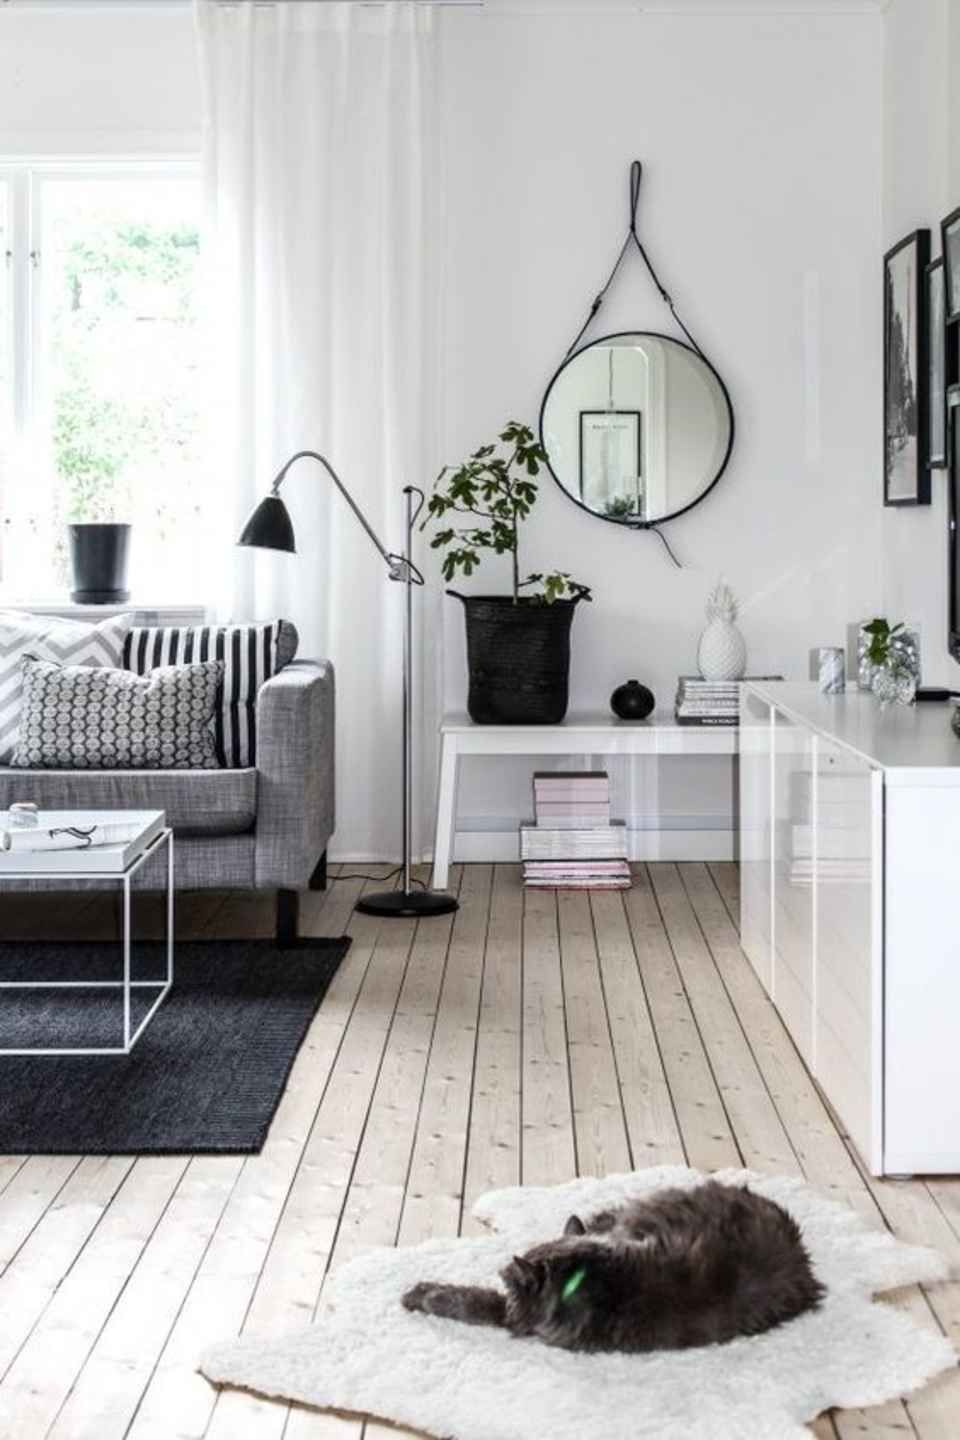 Interior Design Examples Living Room 22 Examples Of Minimal Interior Design 35 Design Wanderlust